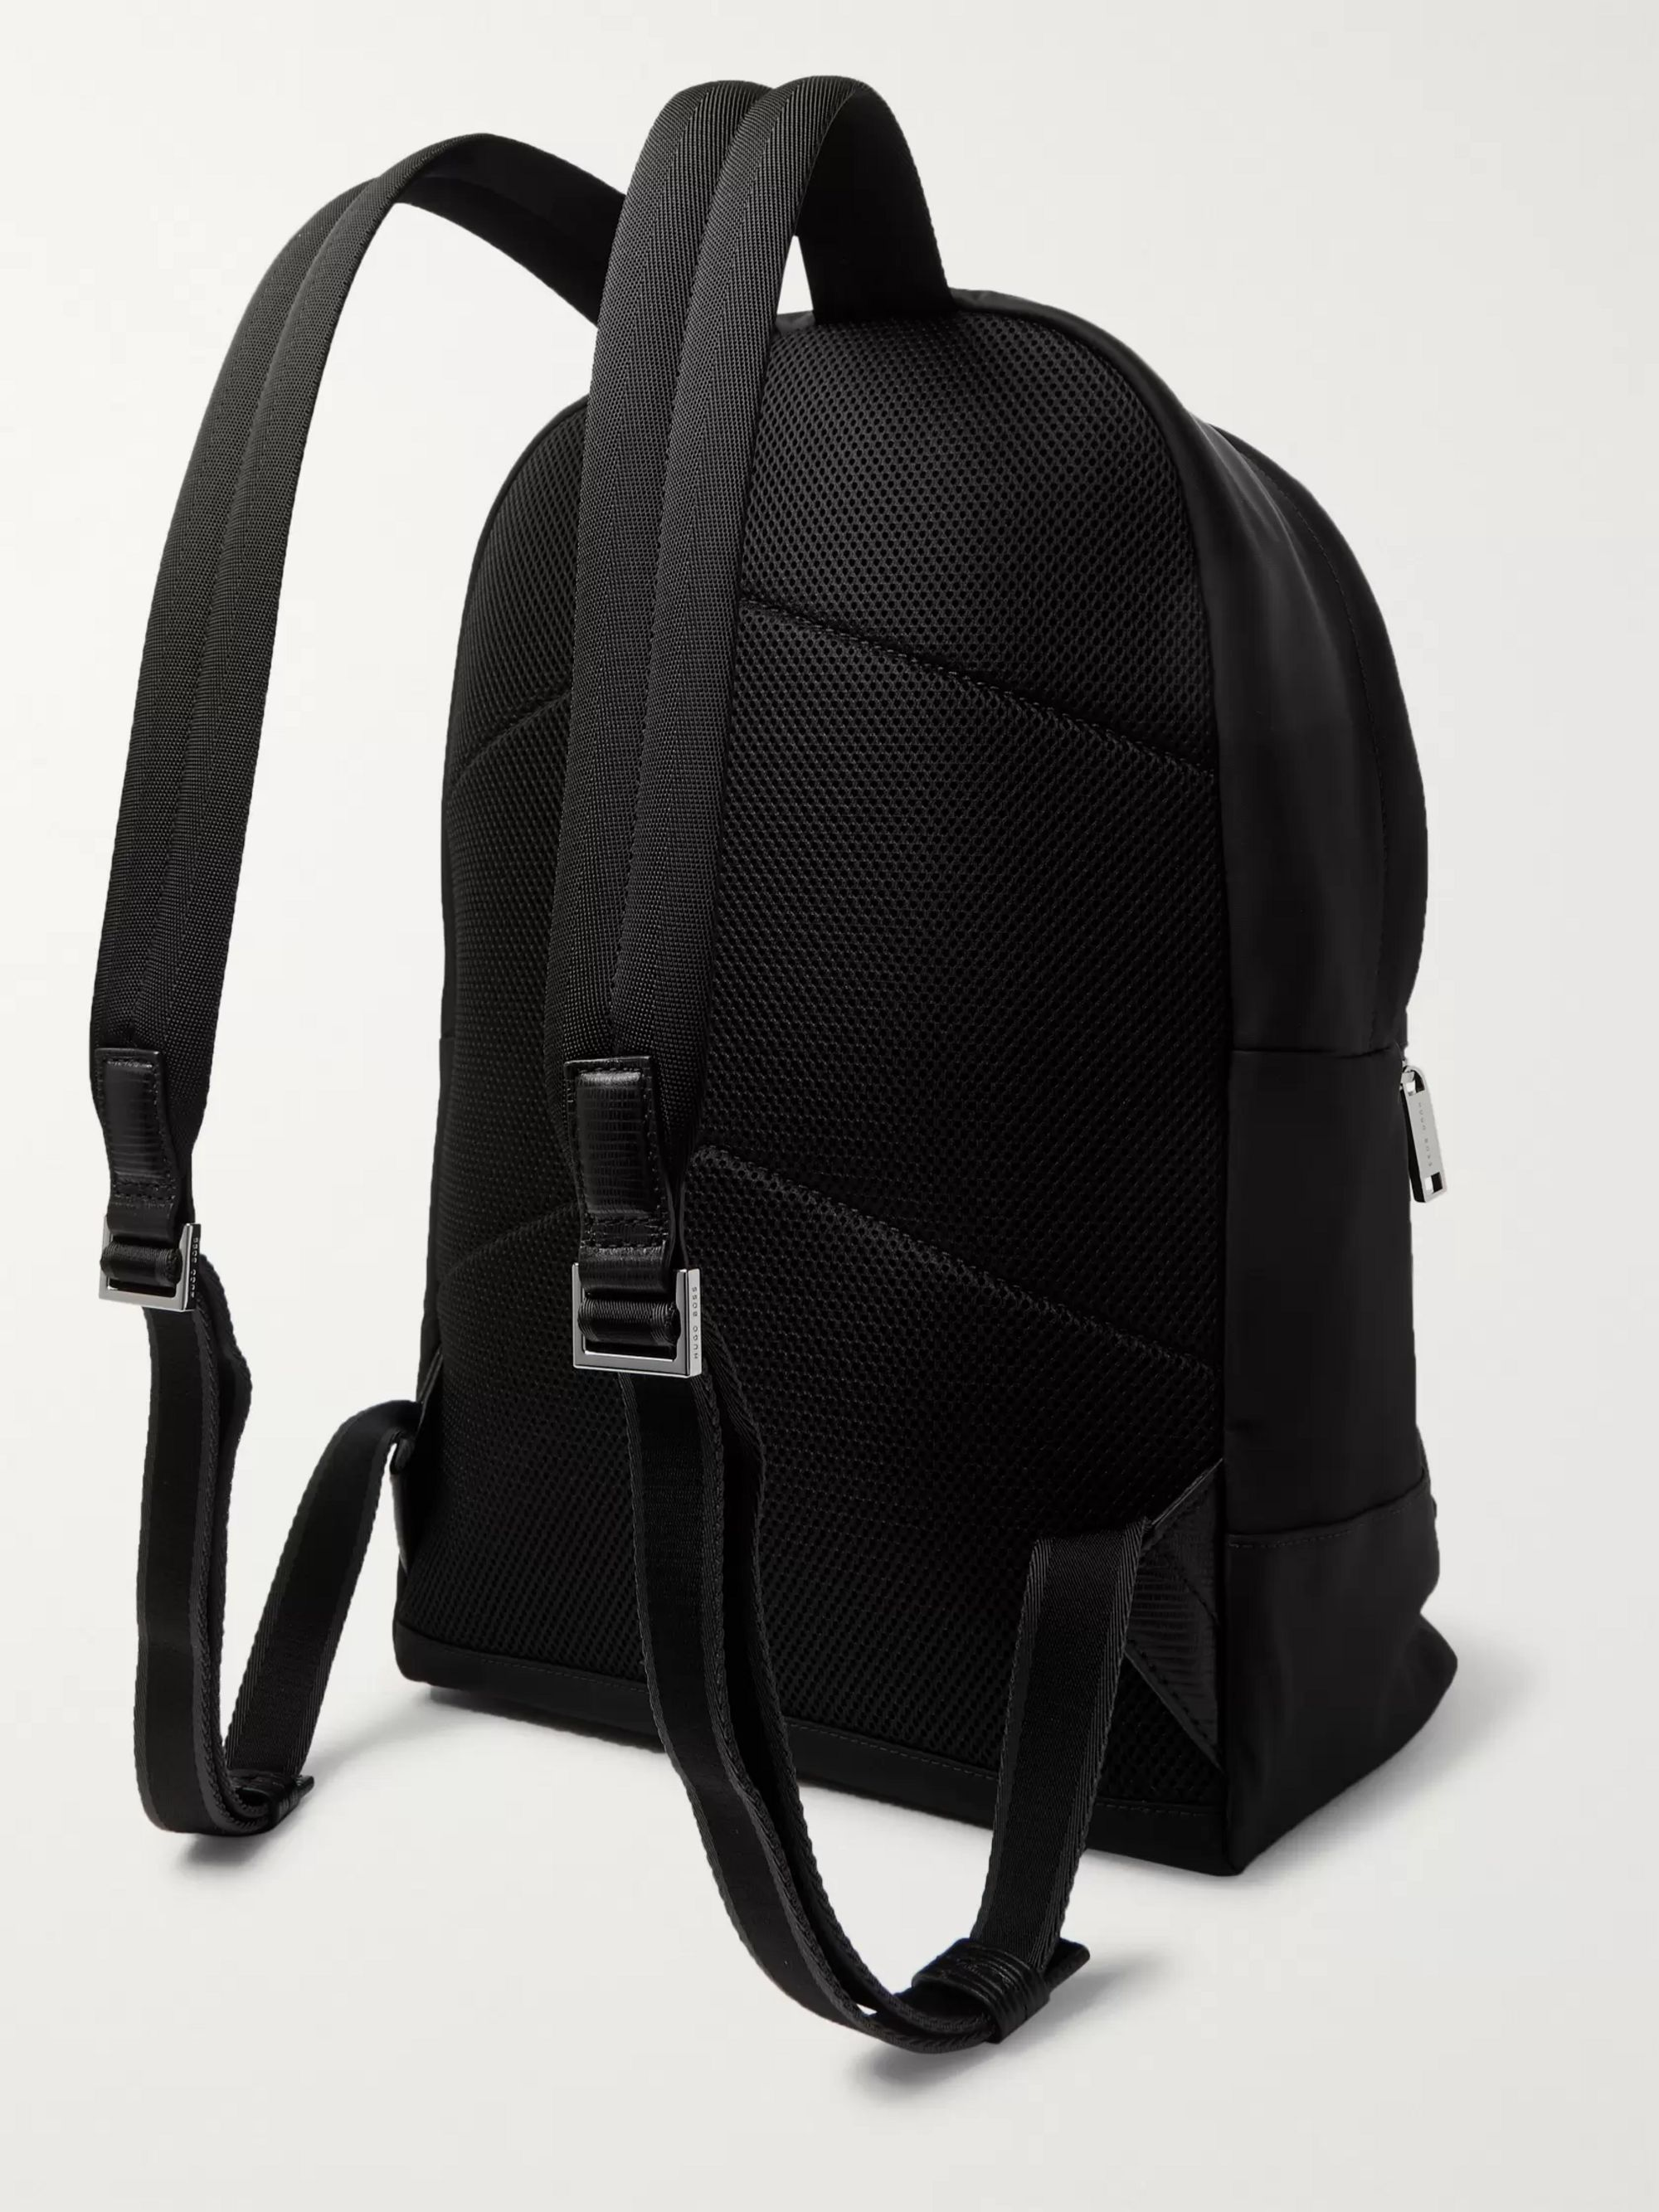 Hugo Boss Meridian Textured Leather-Trimmed Nylon Backpack